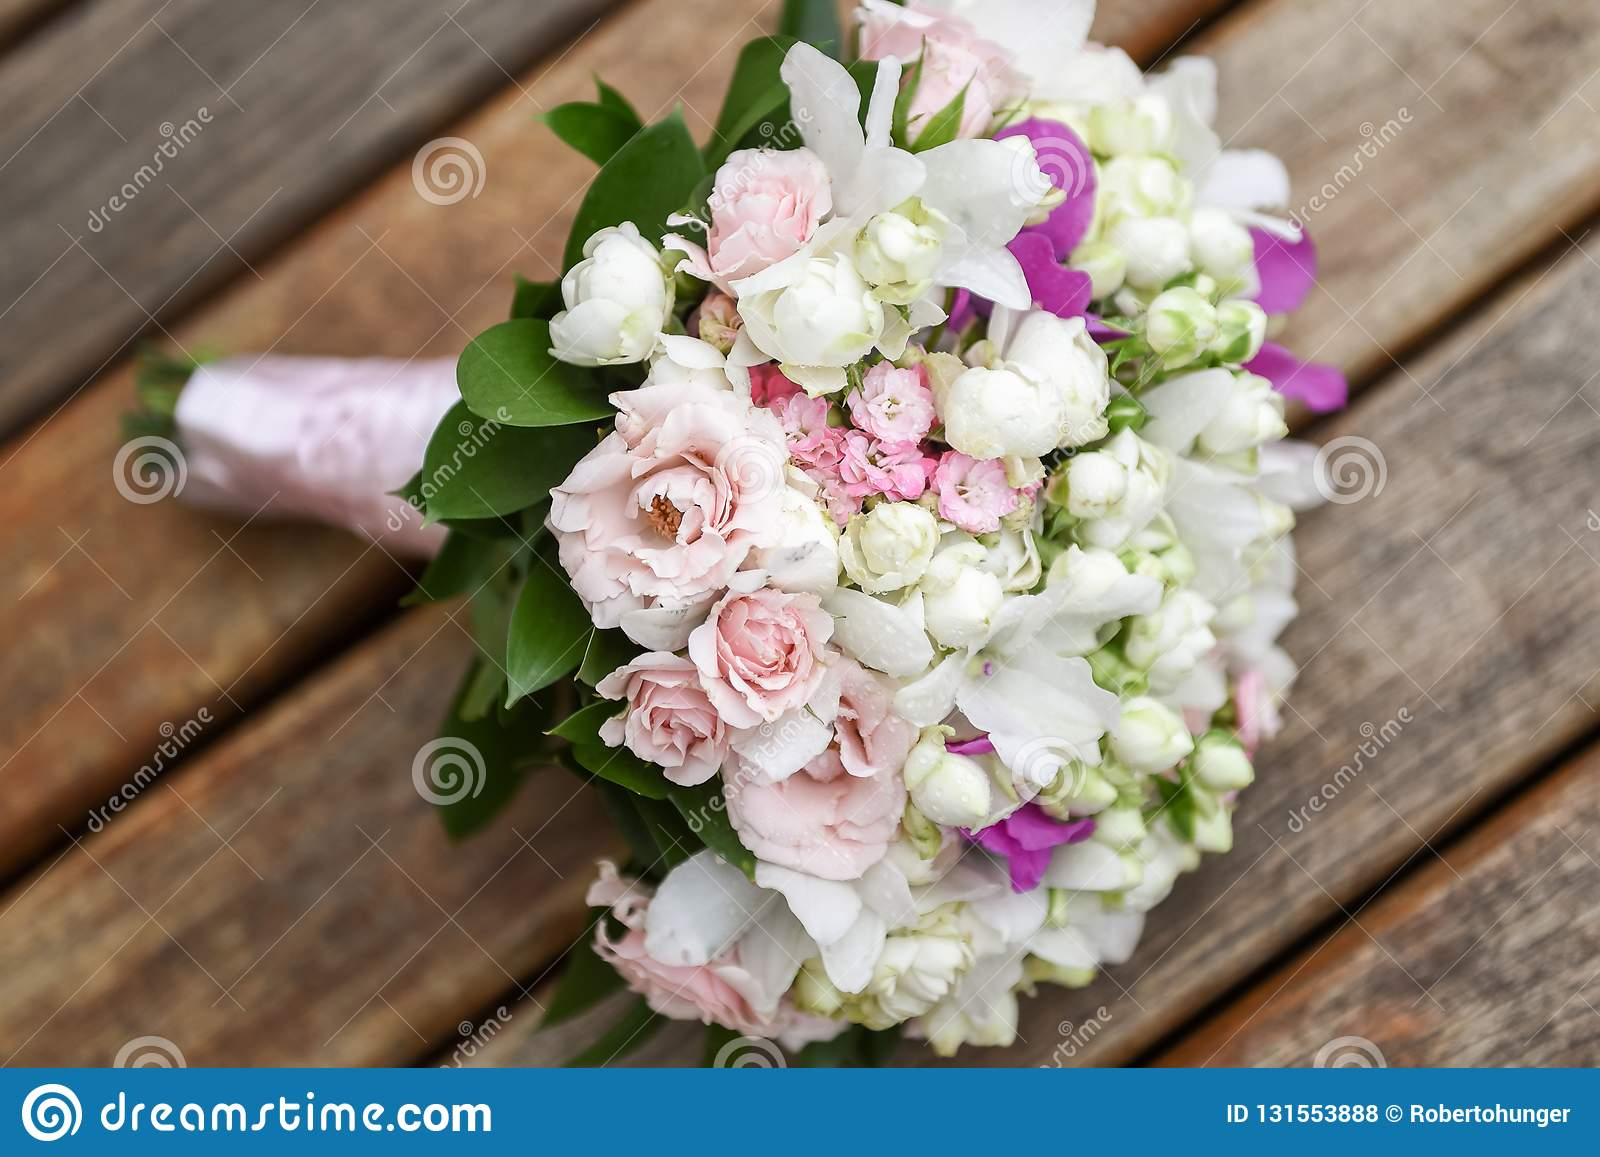 Rustic And Romantic Bridal Bouquet Wedding Arrangement With Many Colors And Flowers Rustic And Romantic Bridal Bouquet Wedding Stock Photo Image Of White Bridal 131553888